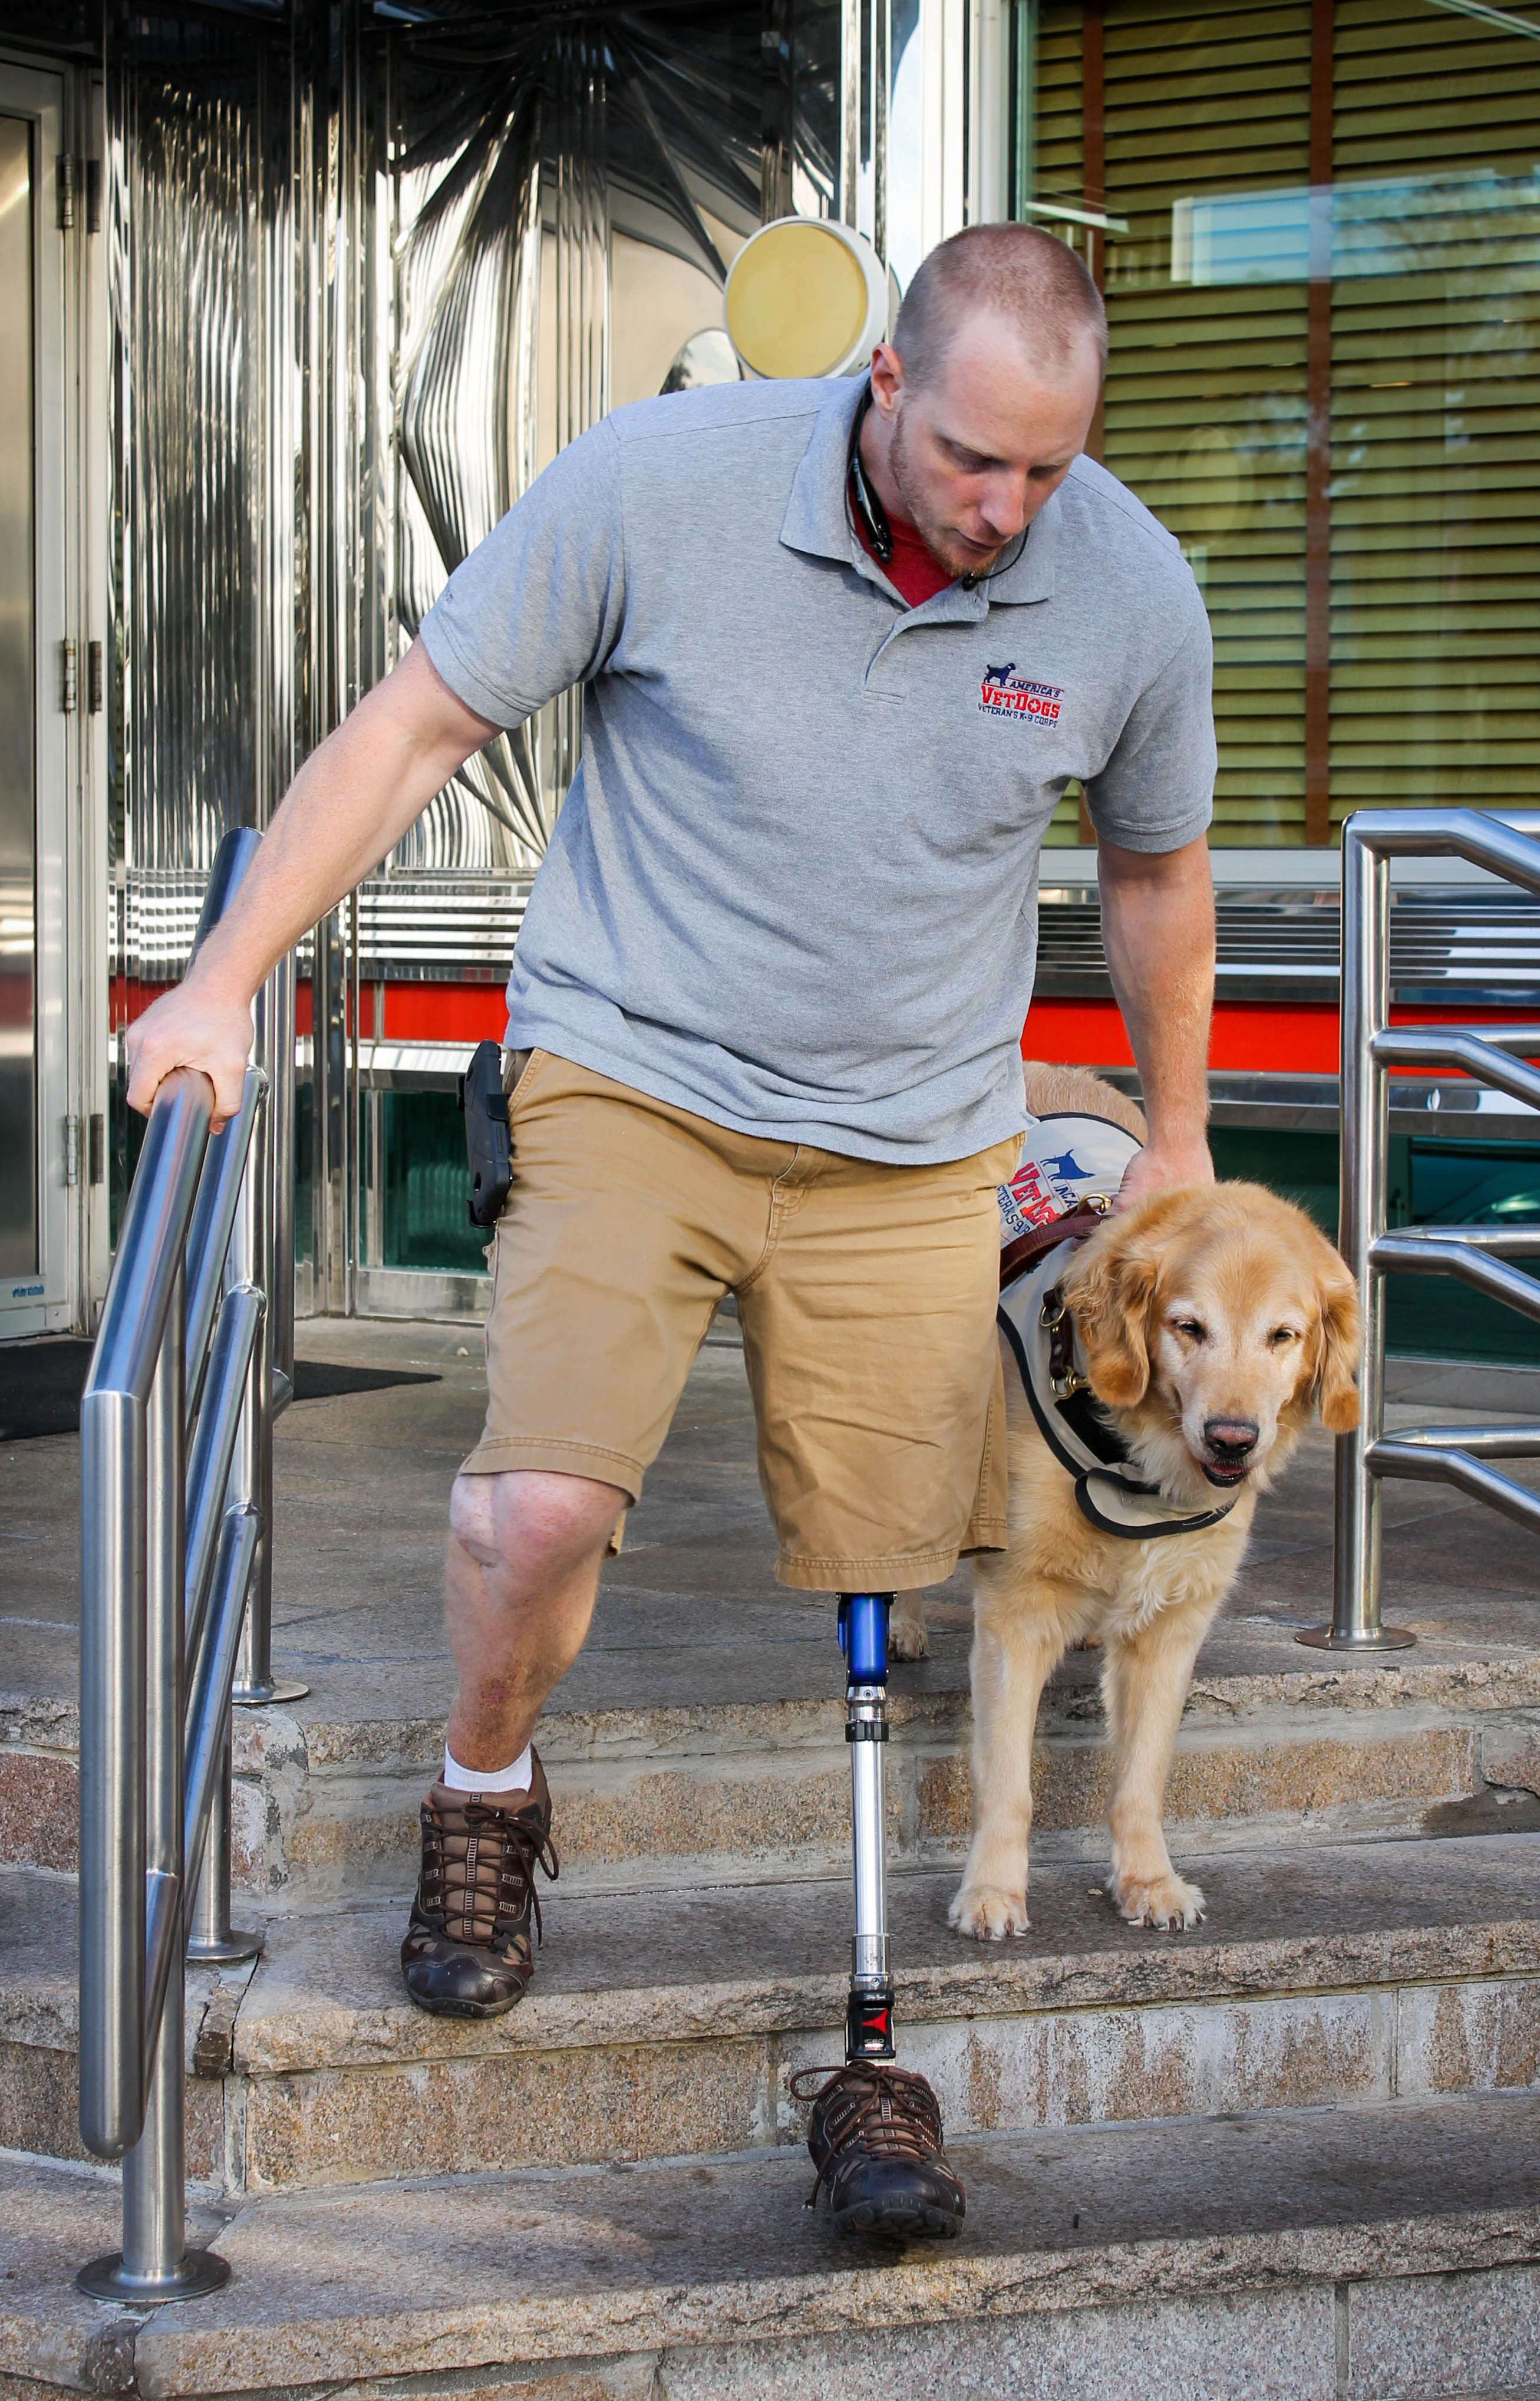 Americas vet dogs thank you for helping our vets